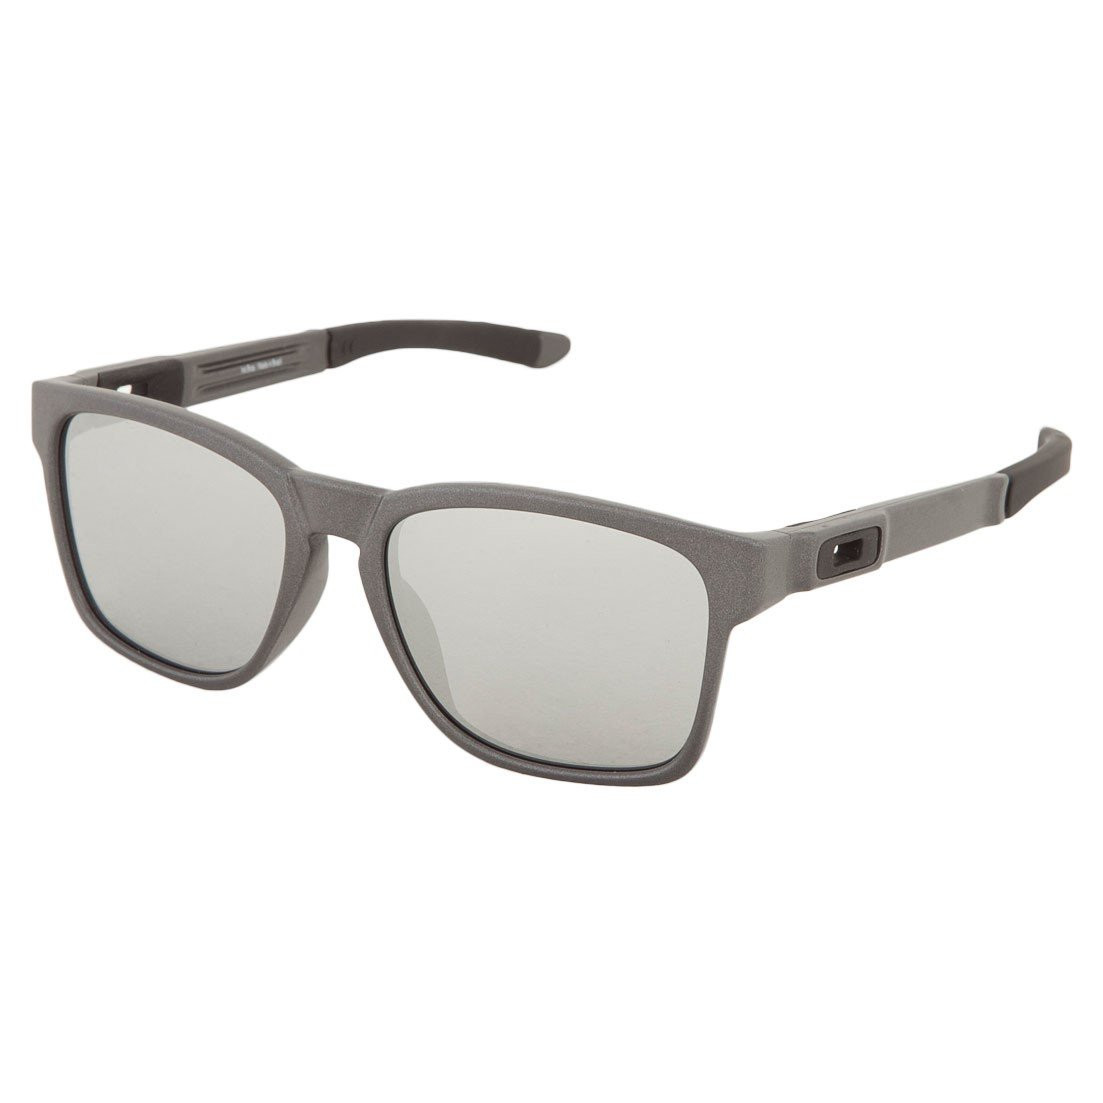 c3230a4a78da6 Óculos Oakley Catalyst Steel  Lente Chrome Iridium ref OO9272-03